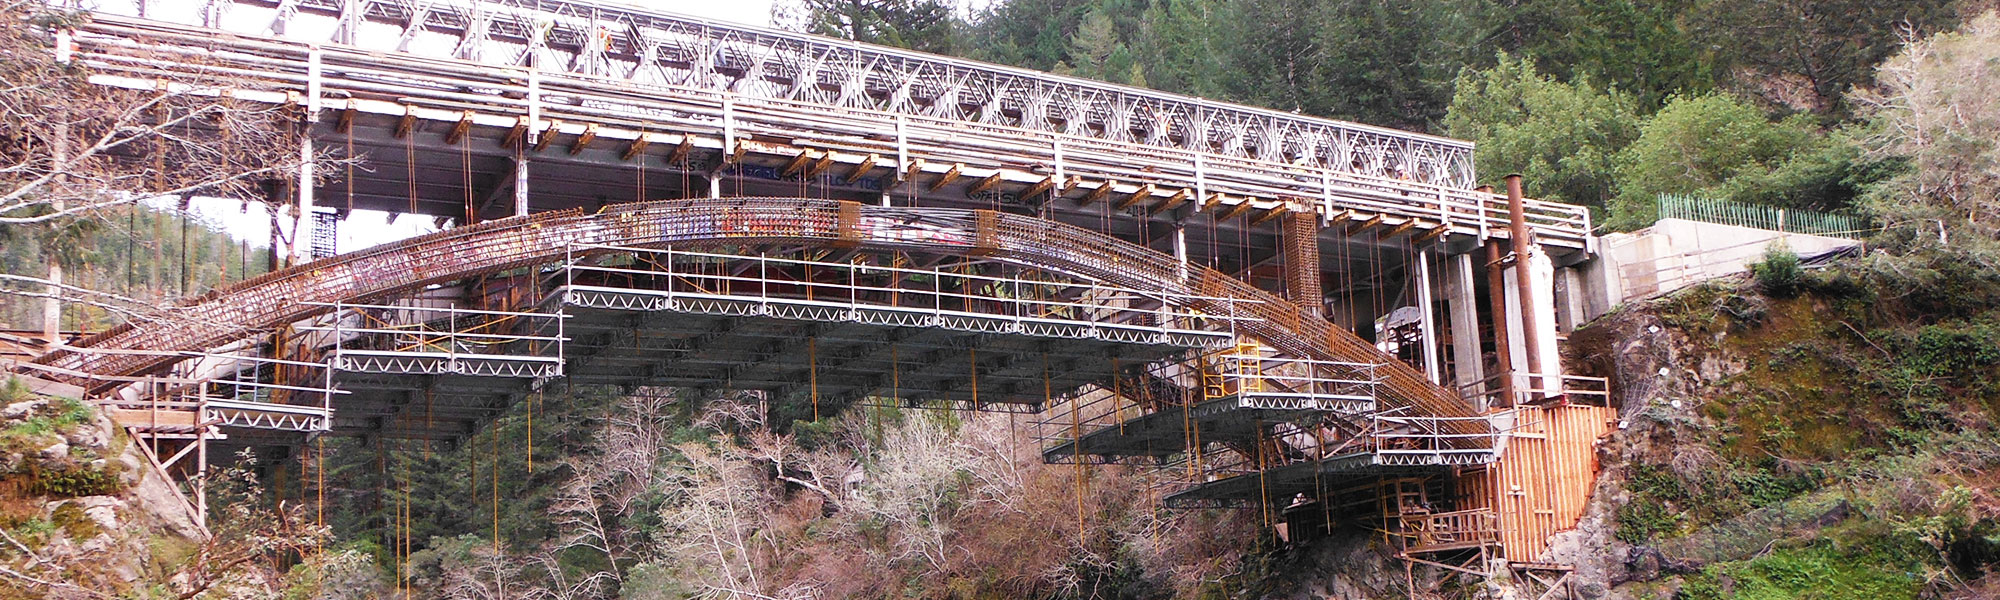 Smith River bridge replacement, Crescent City